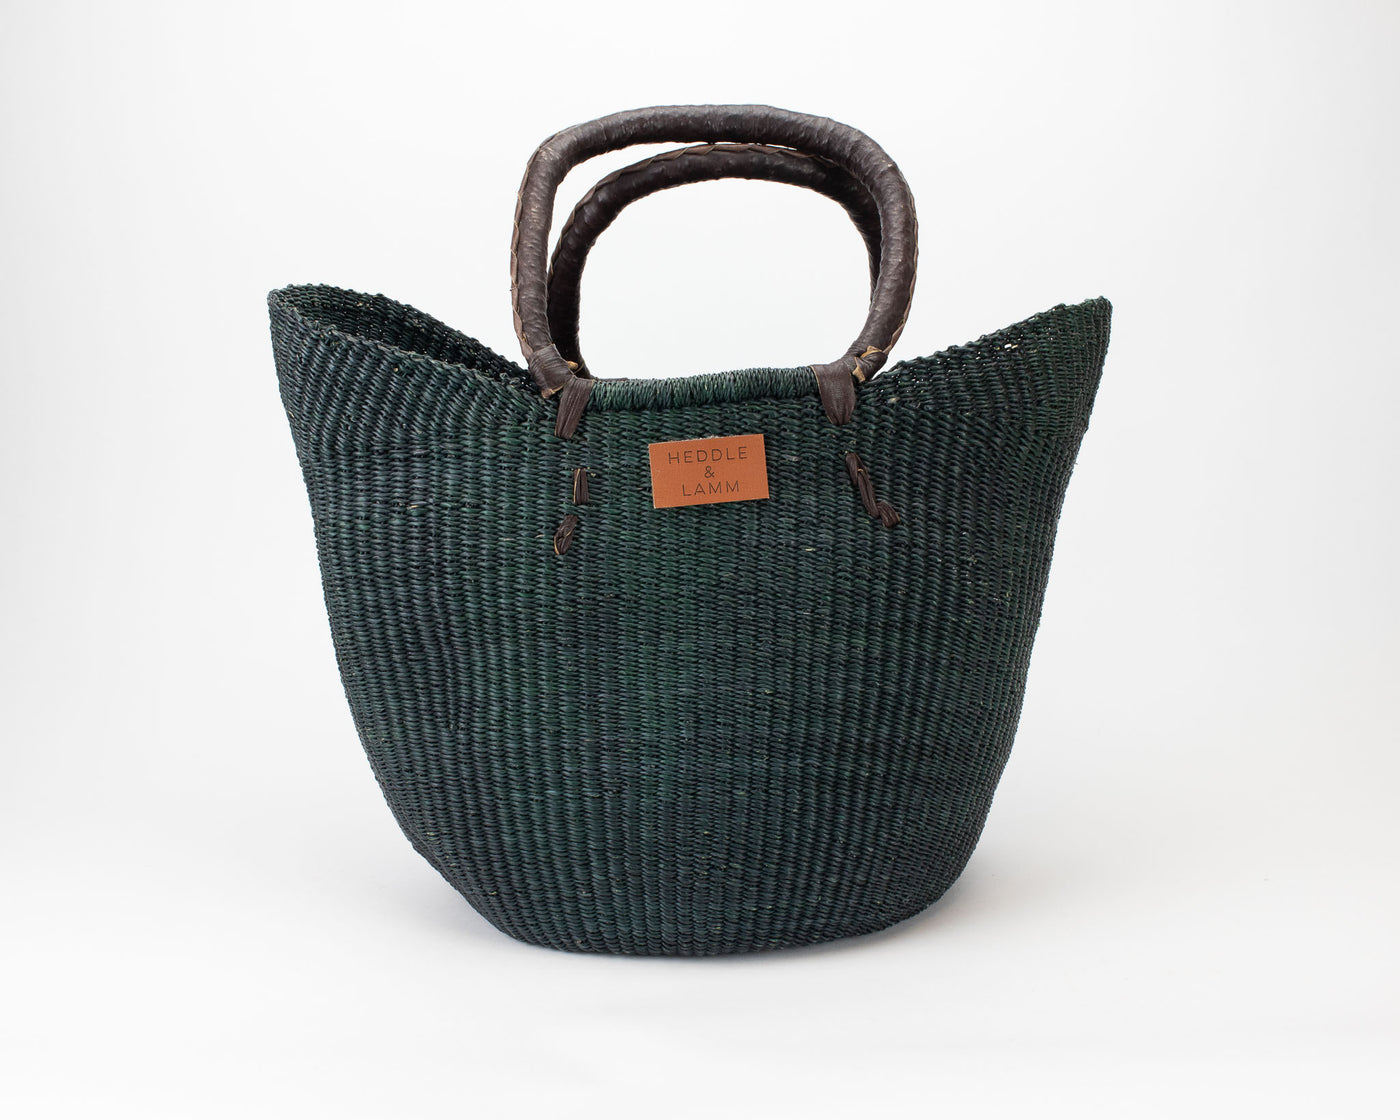 Ongo - Green Shopper Basket - Heddle & Lamm